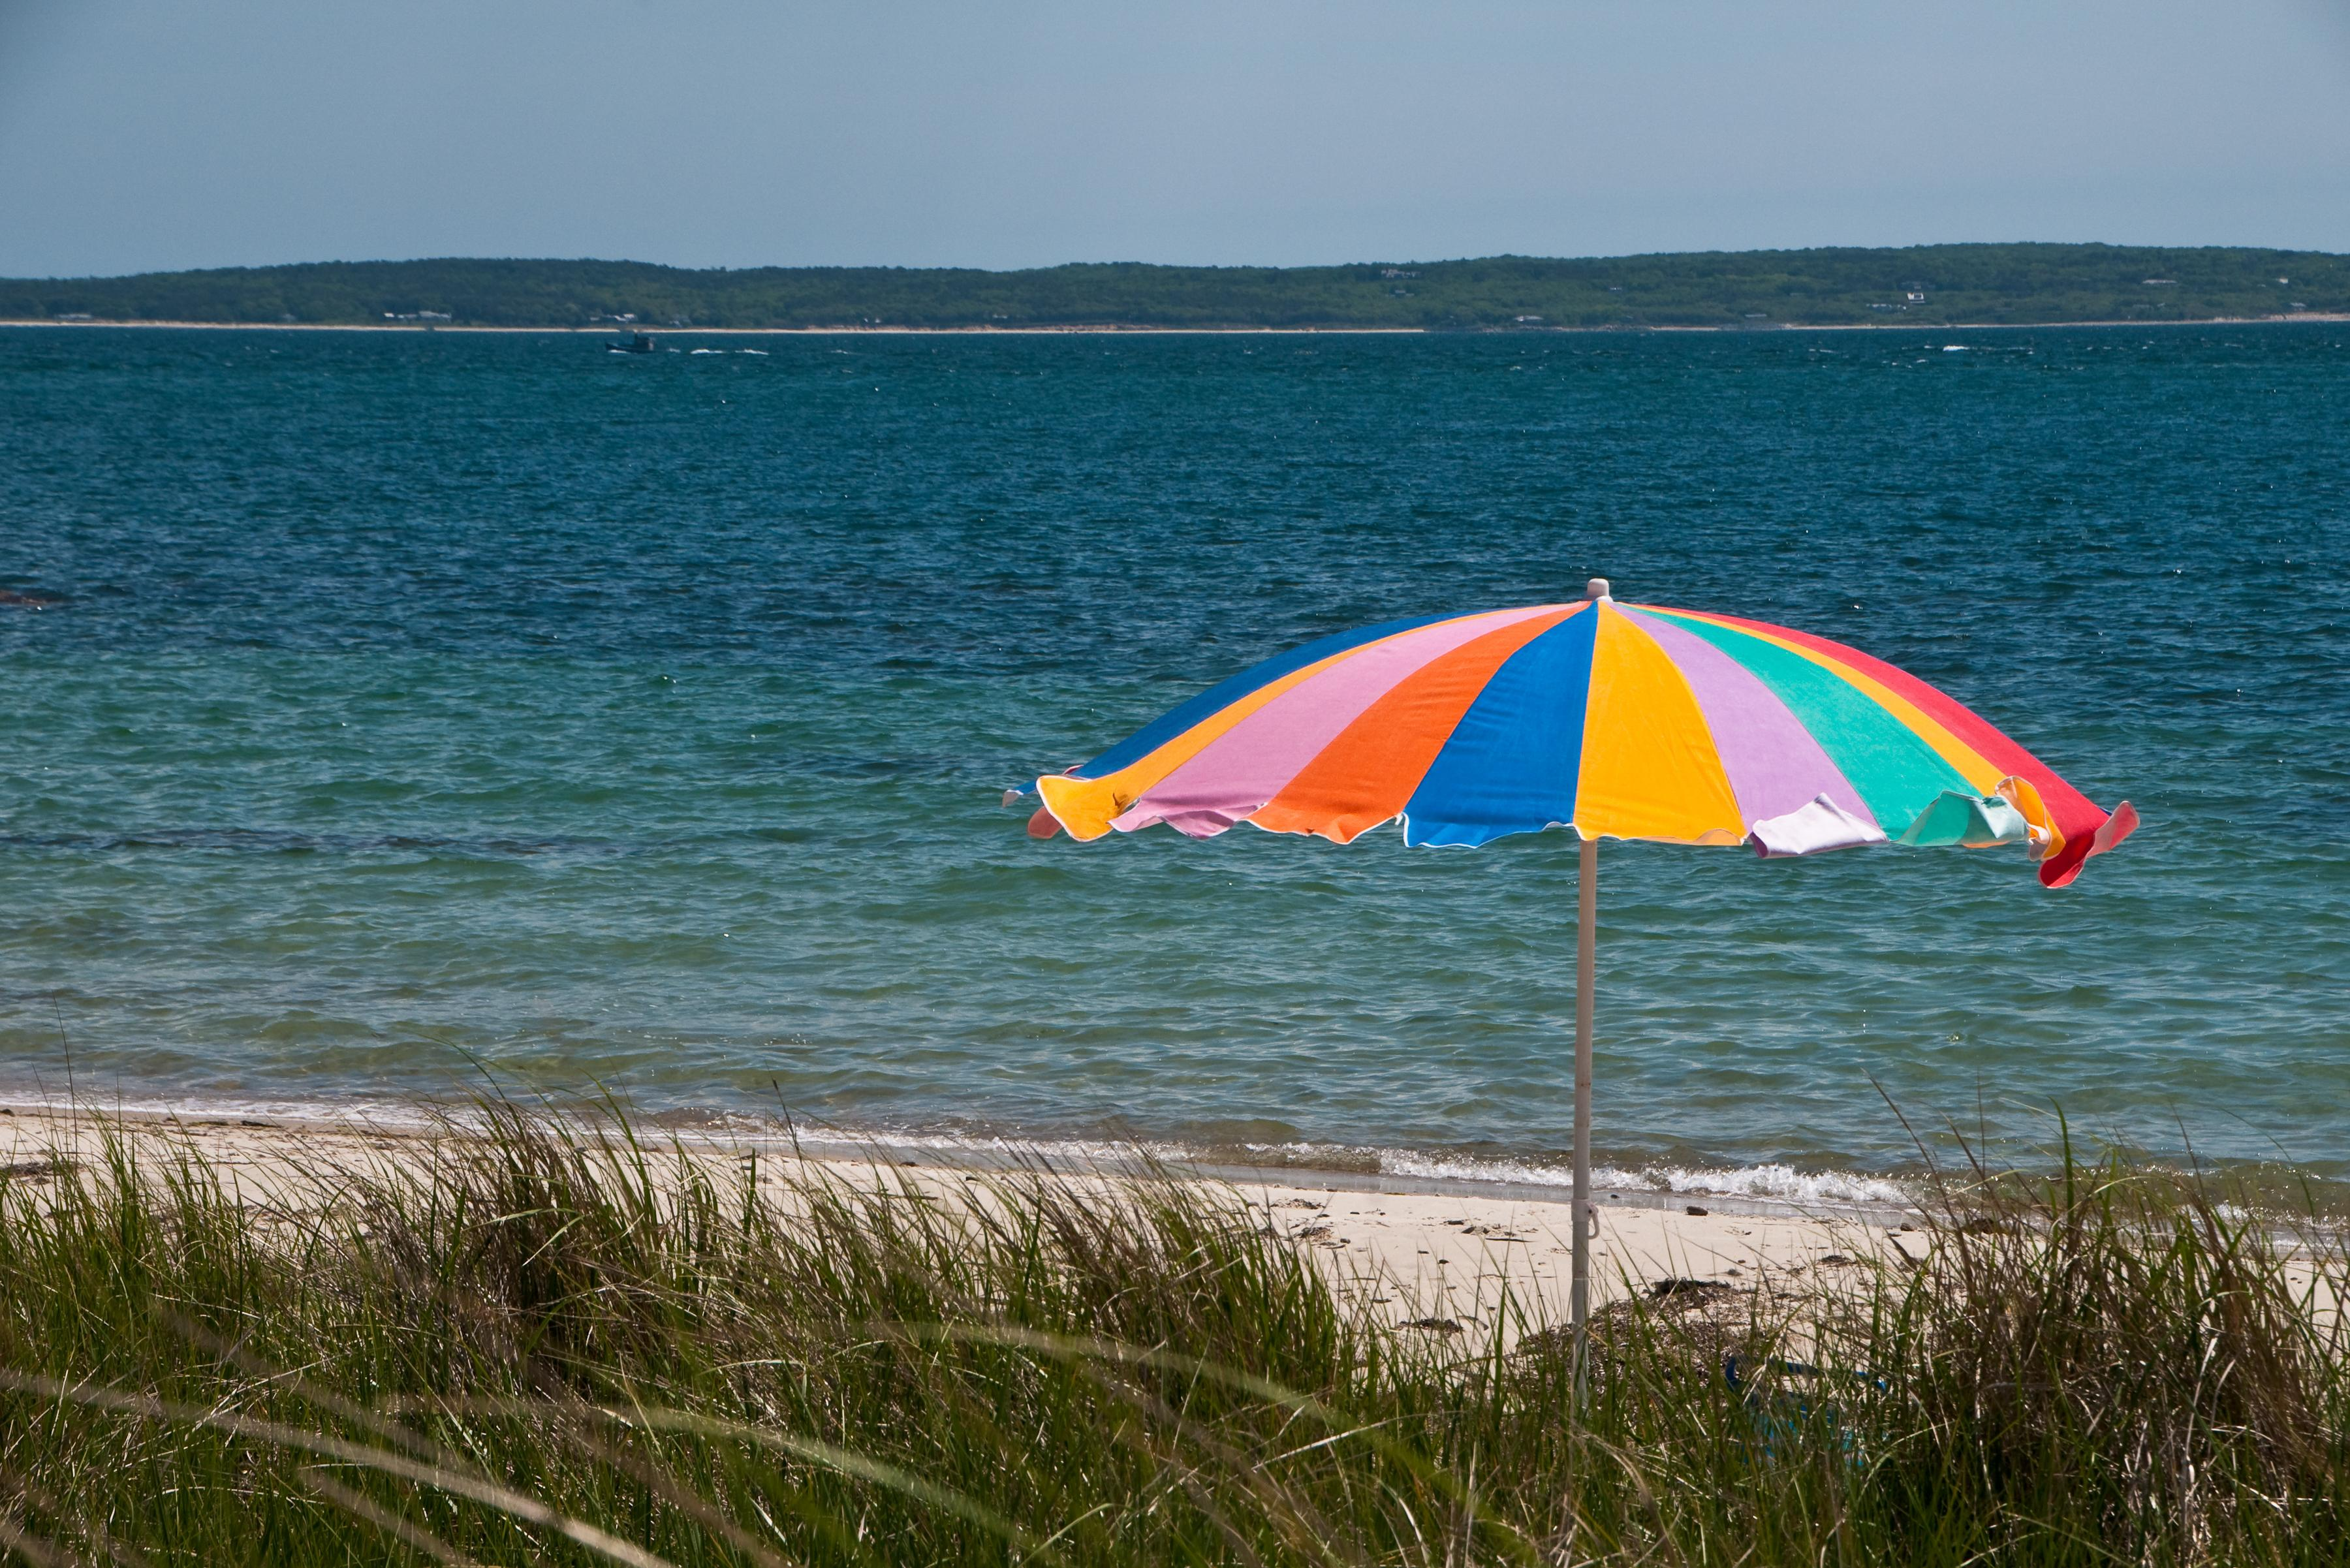 Stroll to Falmouth Heights Town Beach for tranquil days along the Vineyard Sound.